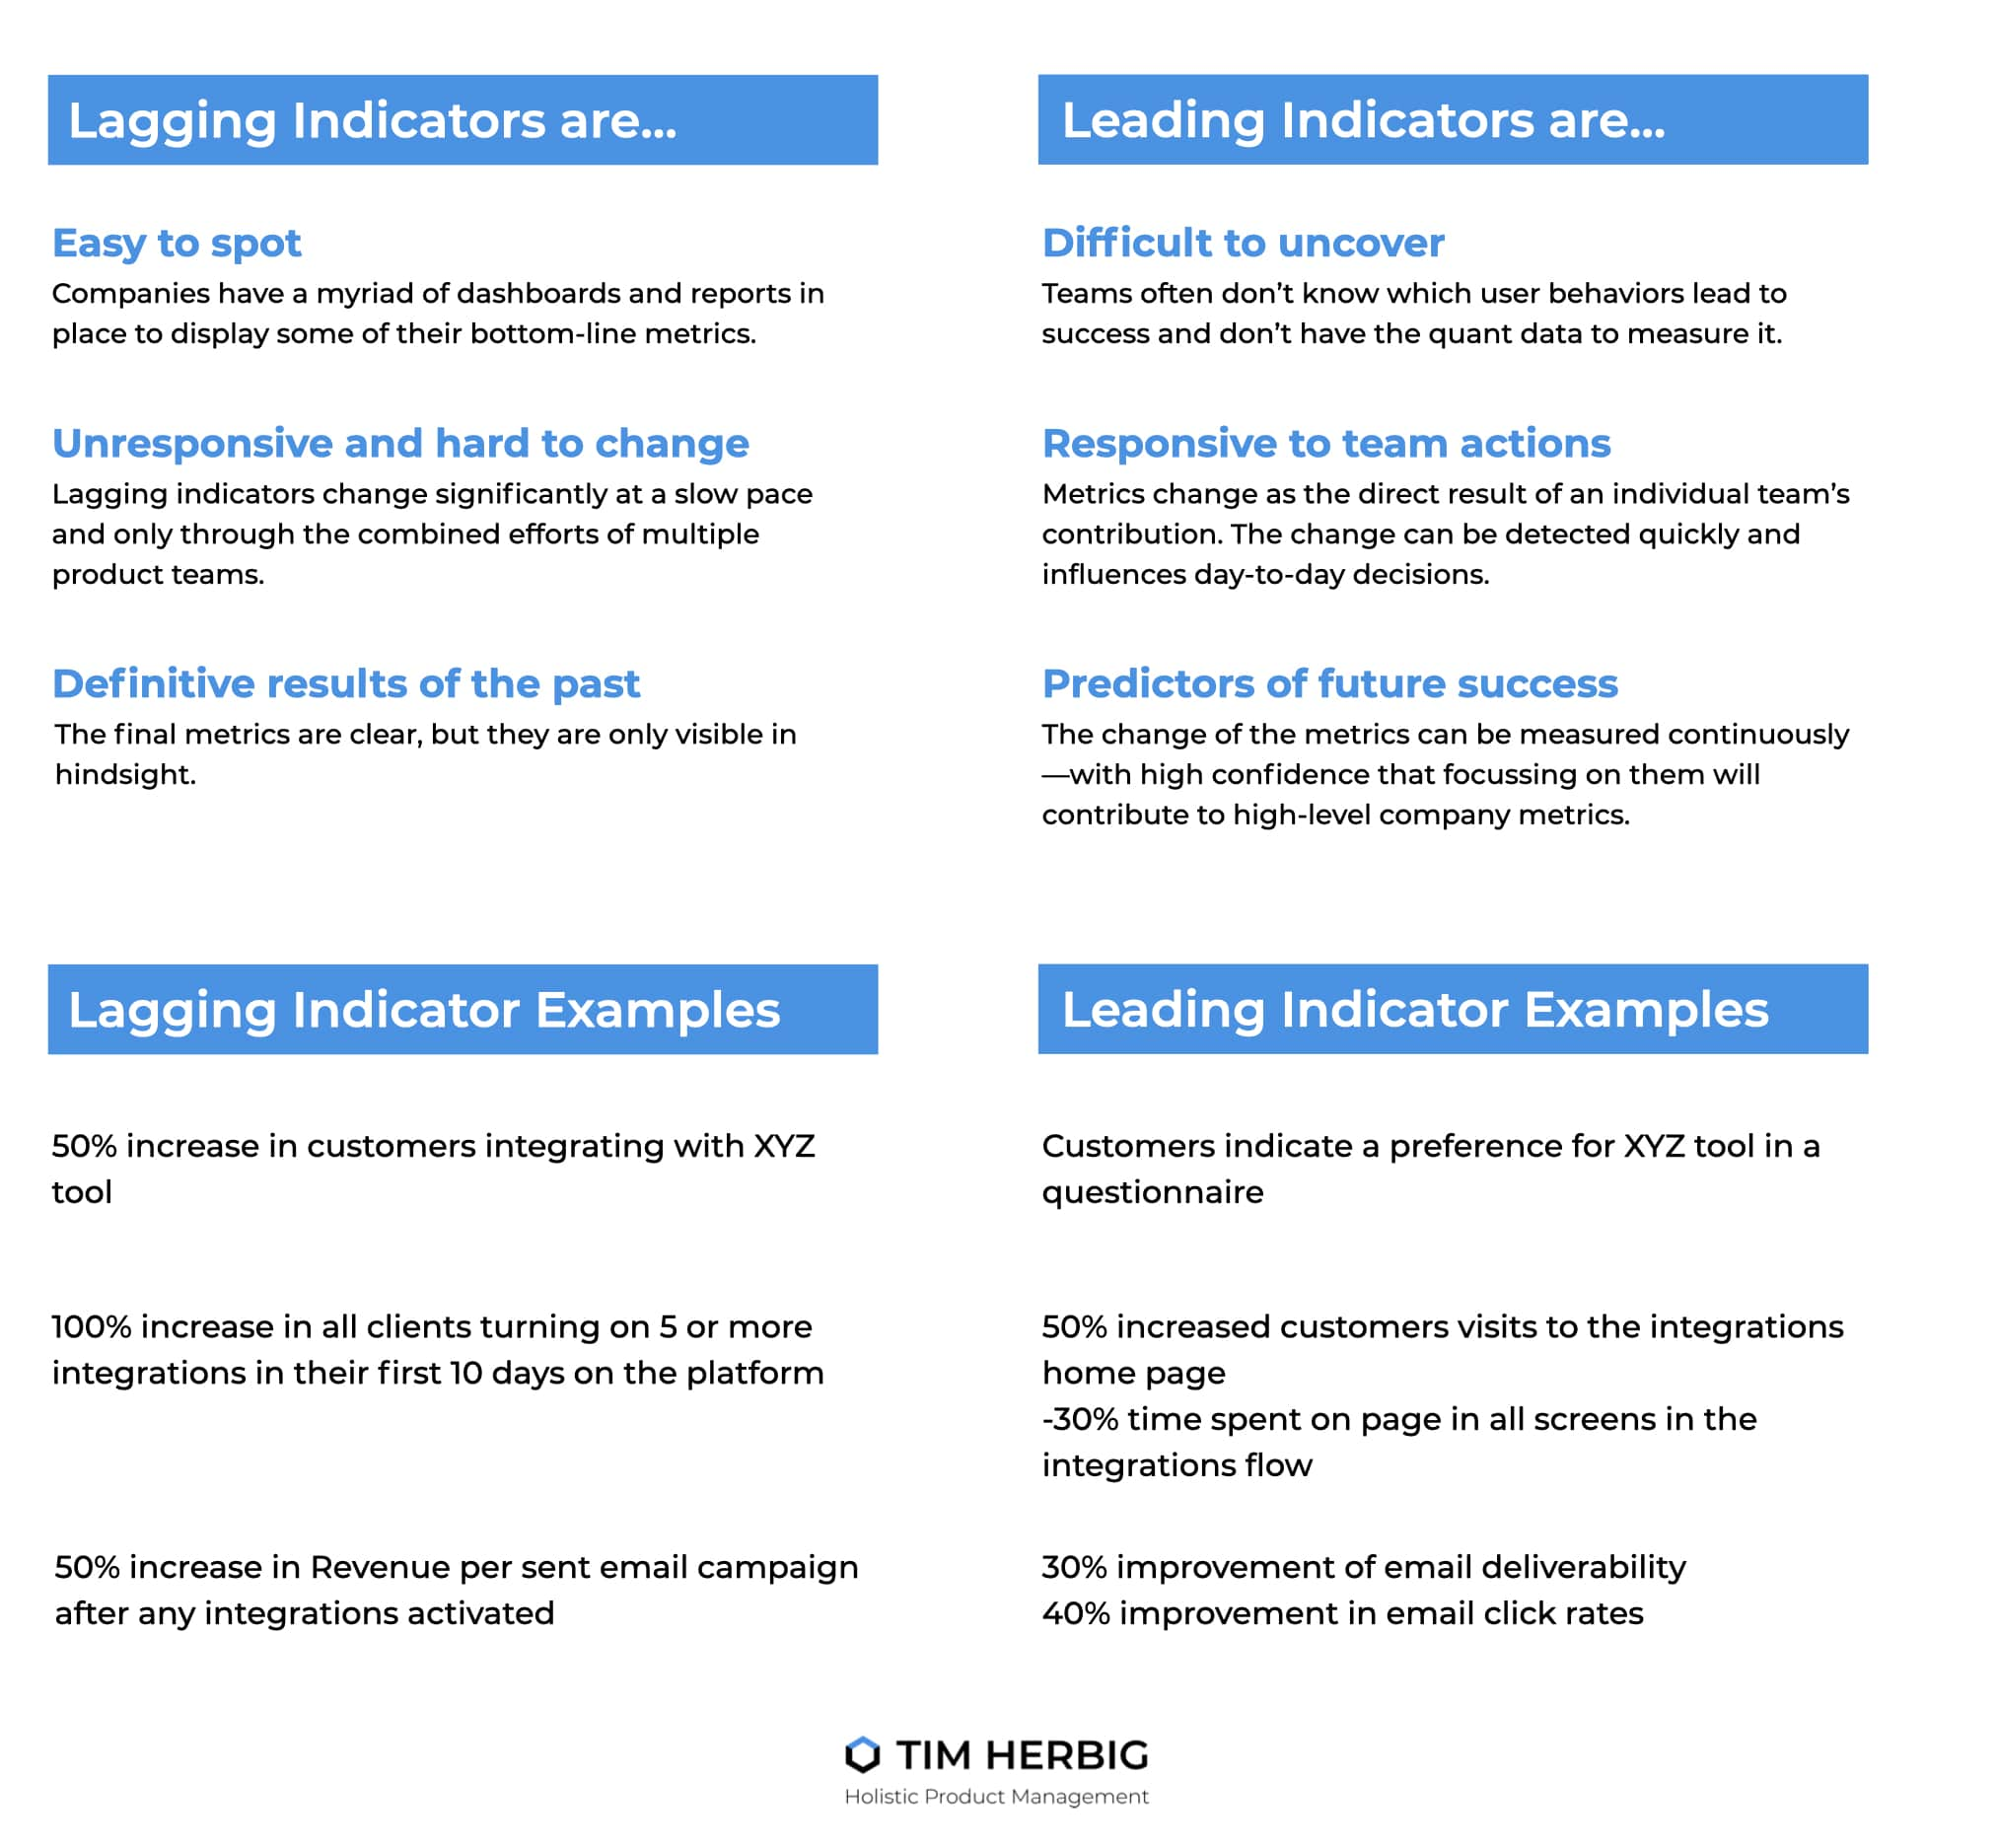 Leading and Lagging Indicators Definition and Examples